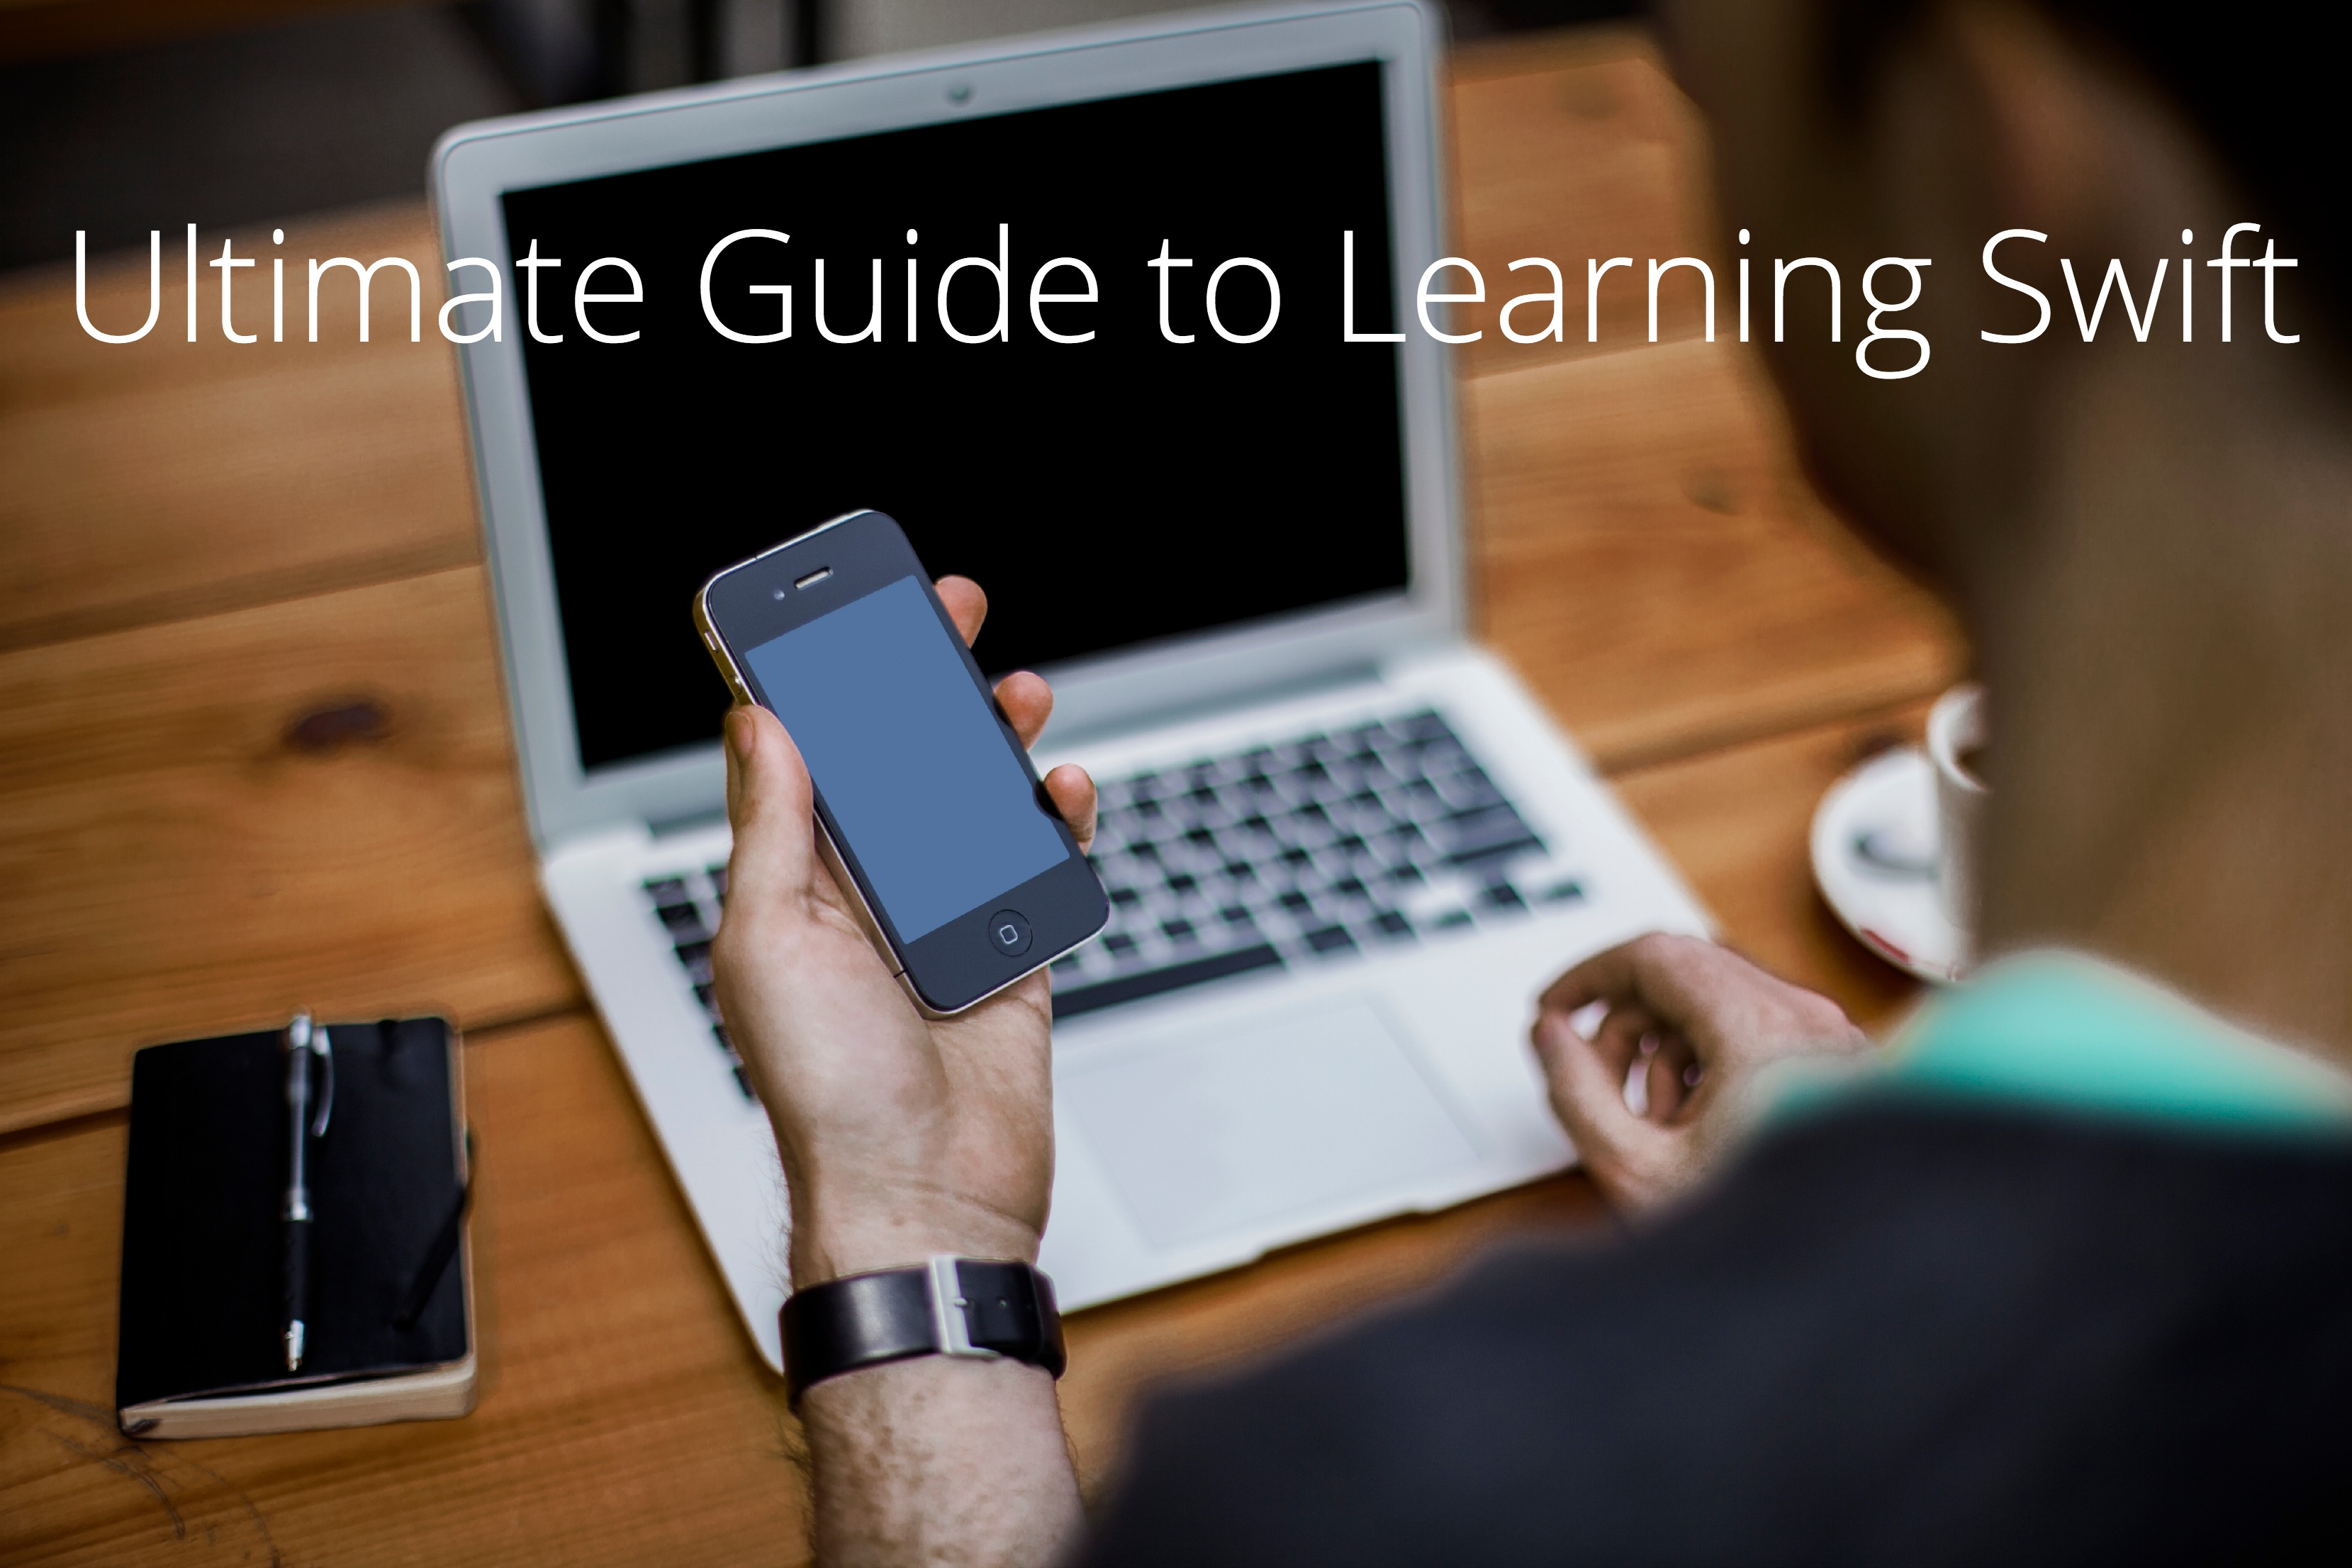 Ultimate Guide to Learning Swift - Bloc Blog